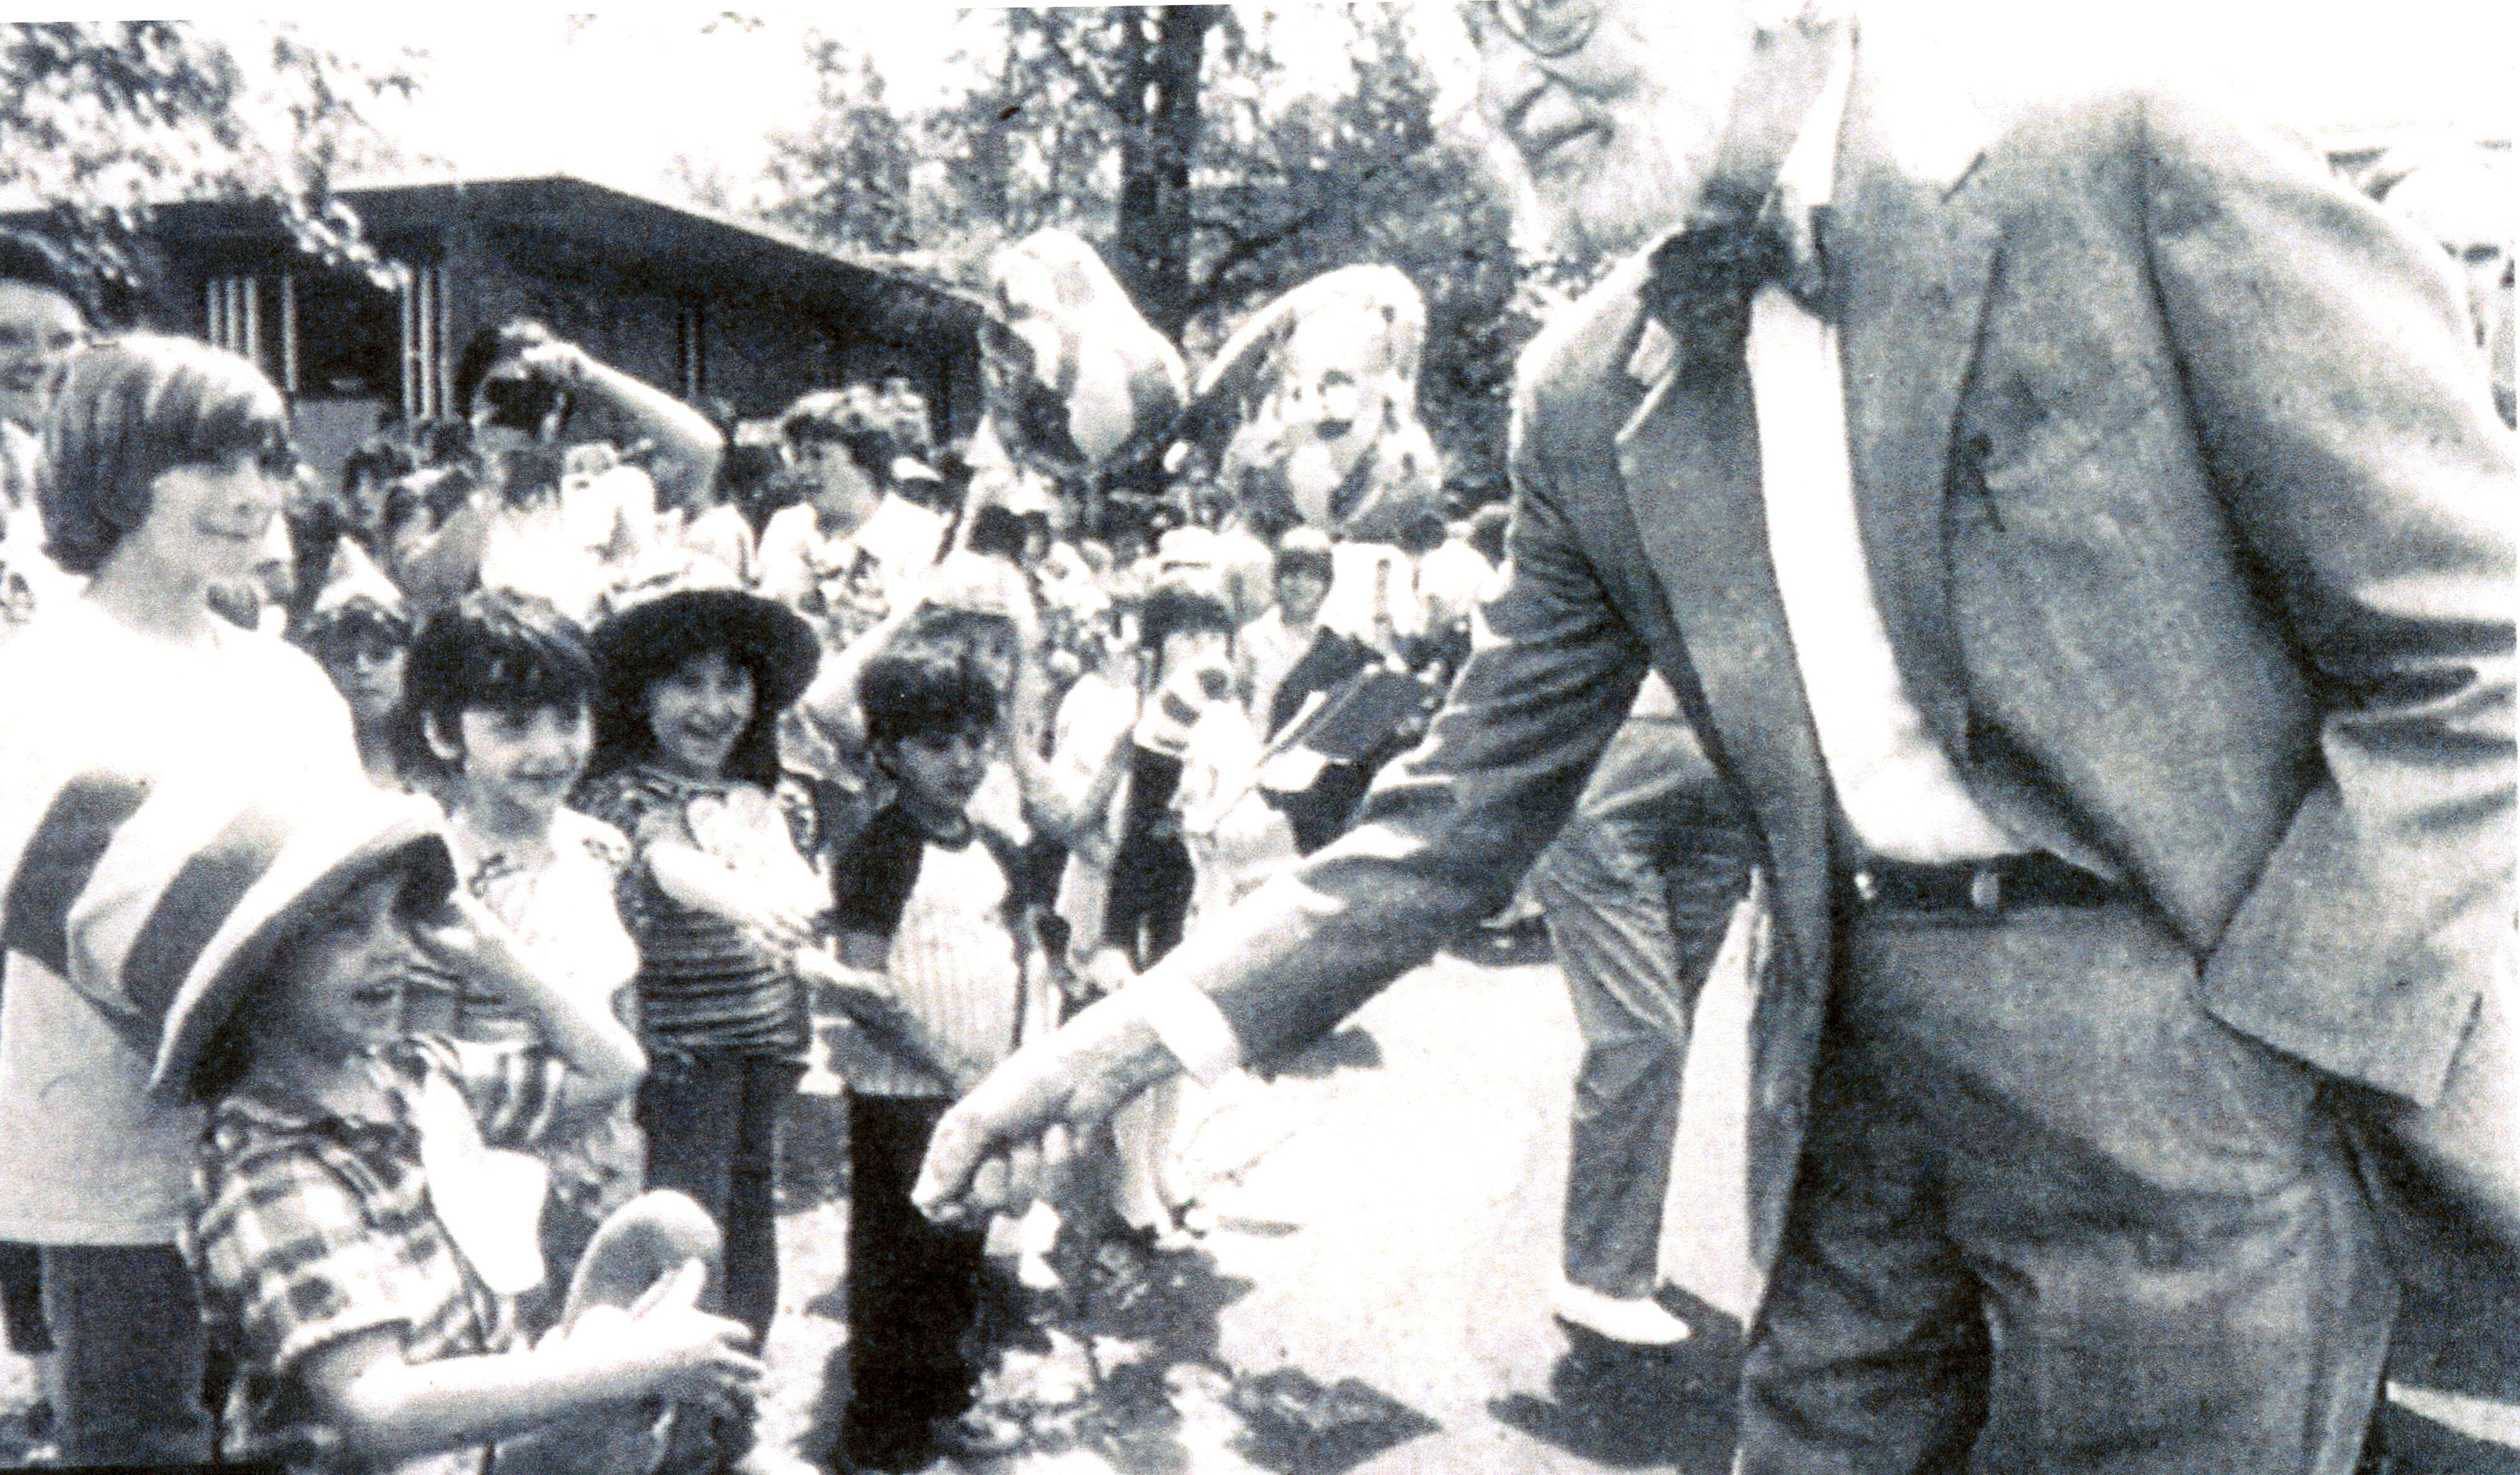 Dr. Seuss on his last visit to his hometown of Springfield, Massachusetts in 1986. Photo courtesy of Springfield Union-News